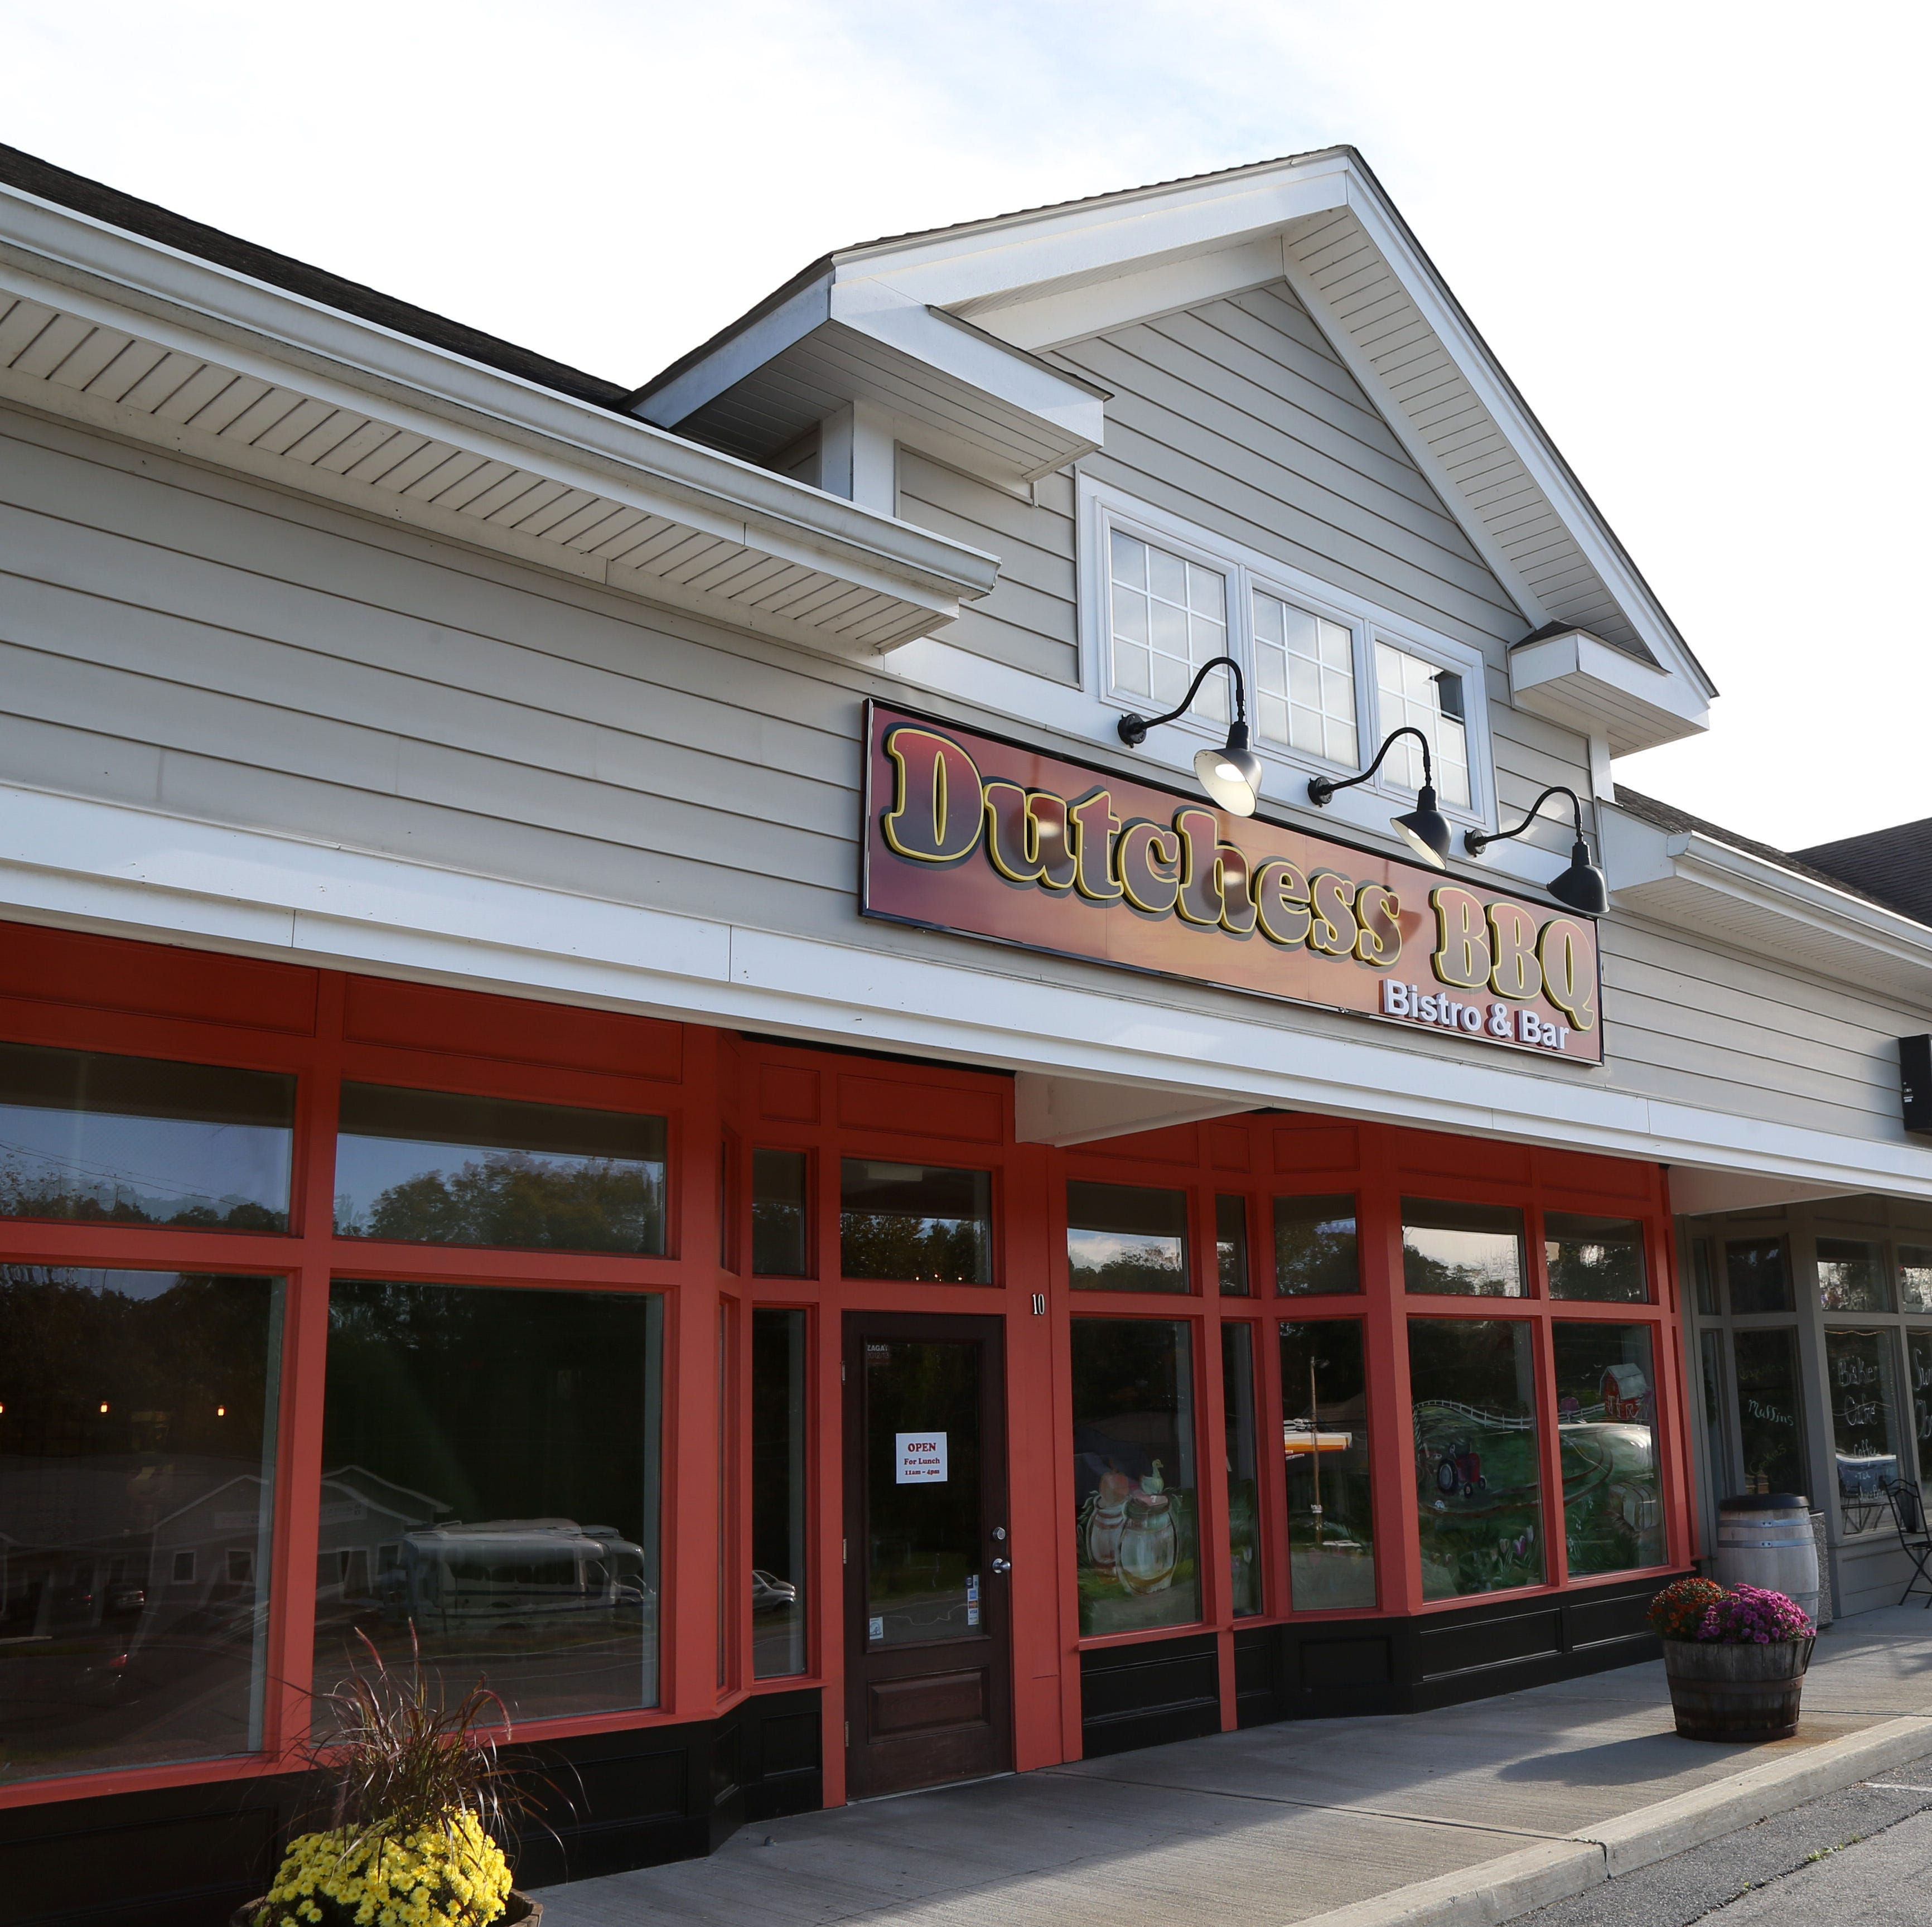 Dutchess BBQ opens at former Le Express site